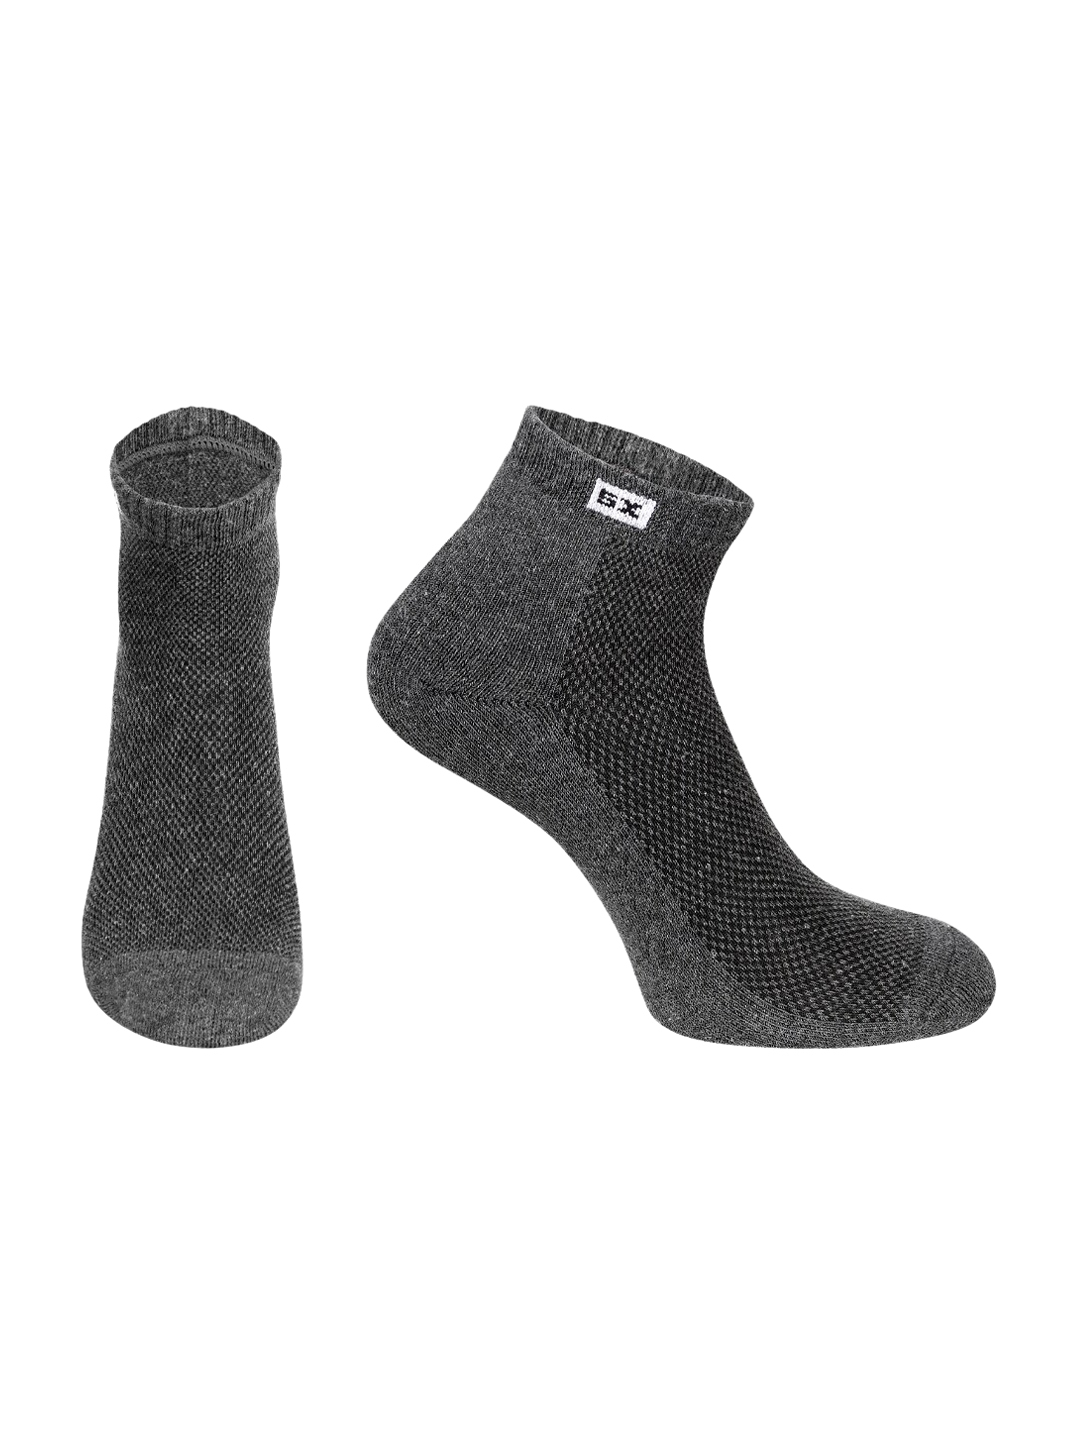 Supersox Unisex Pack Of 3 Solid Ankle Length Socks